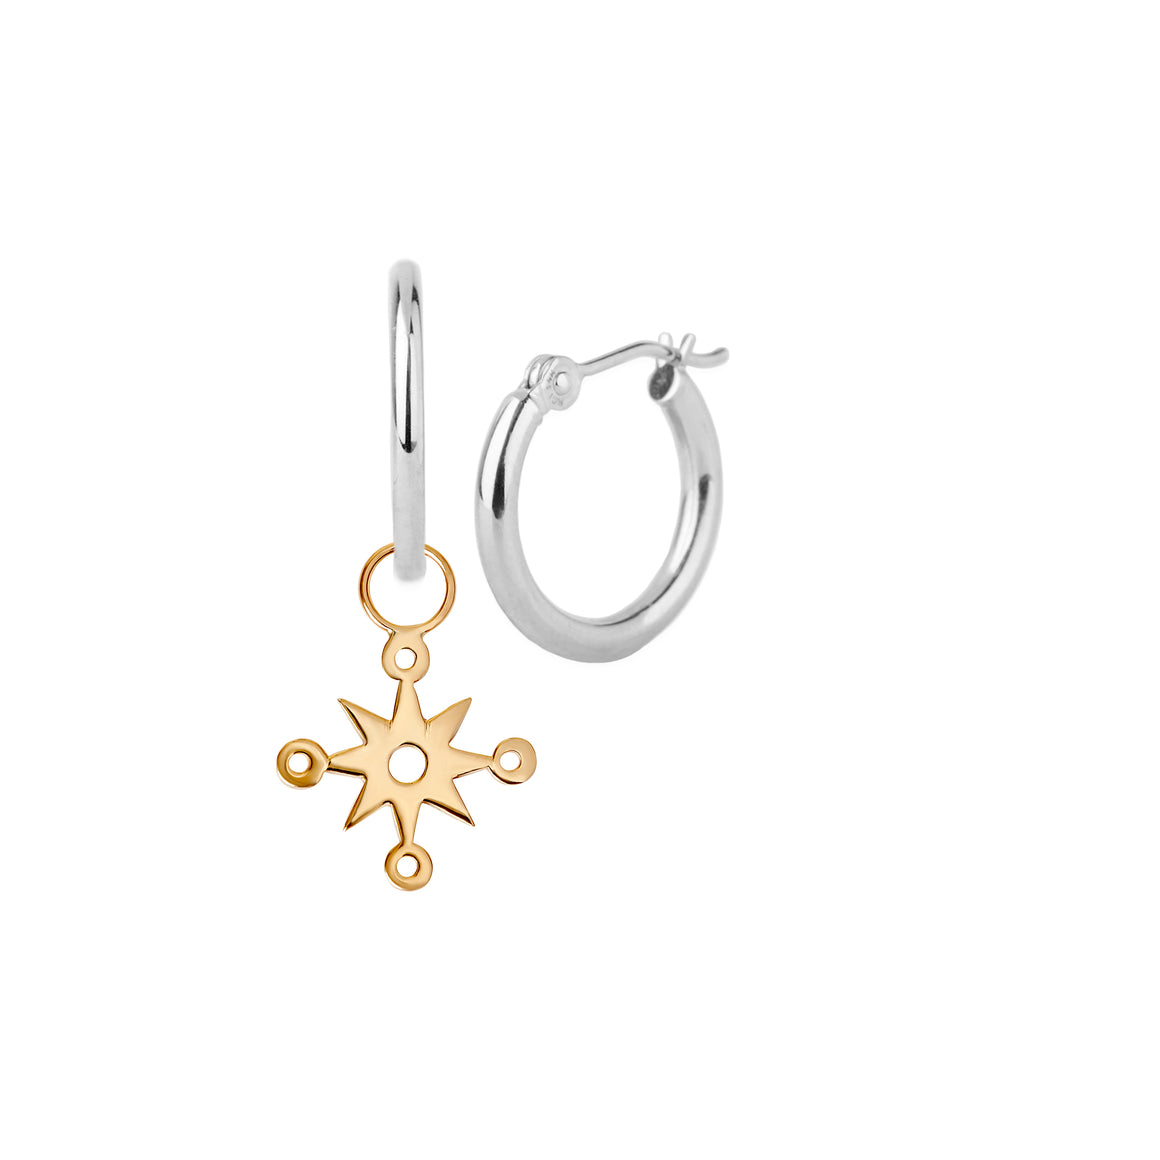 Silver and Gold Compass Charm Hoops